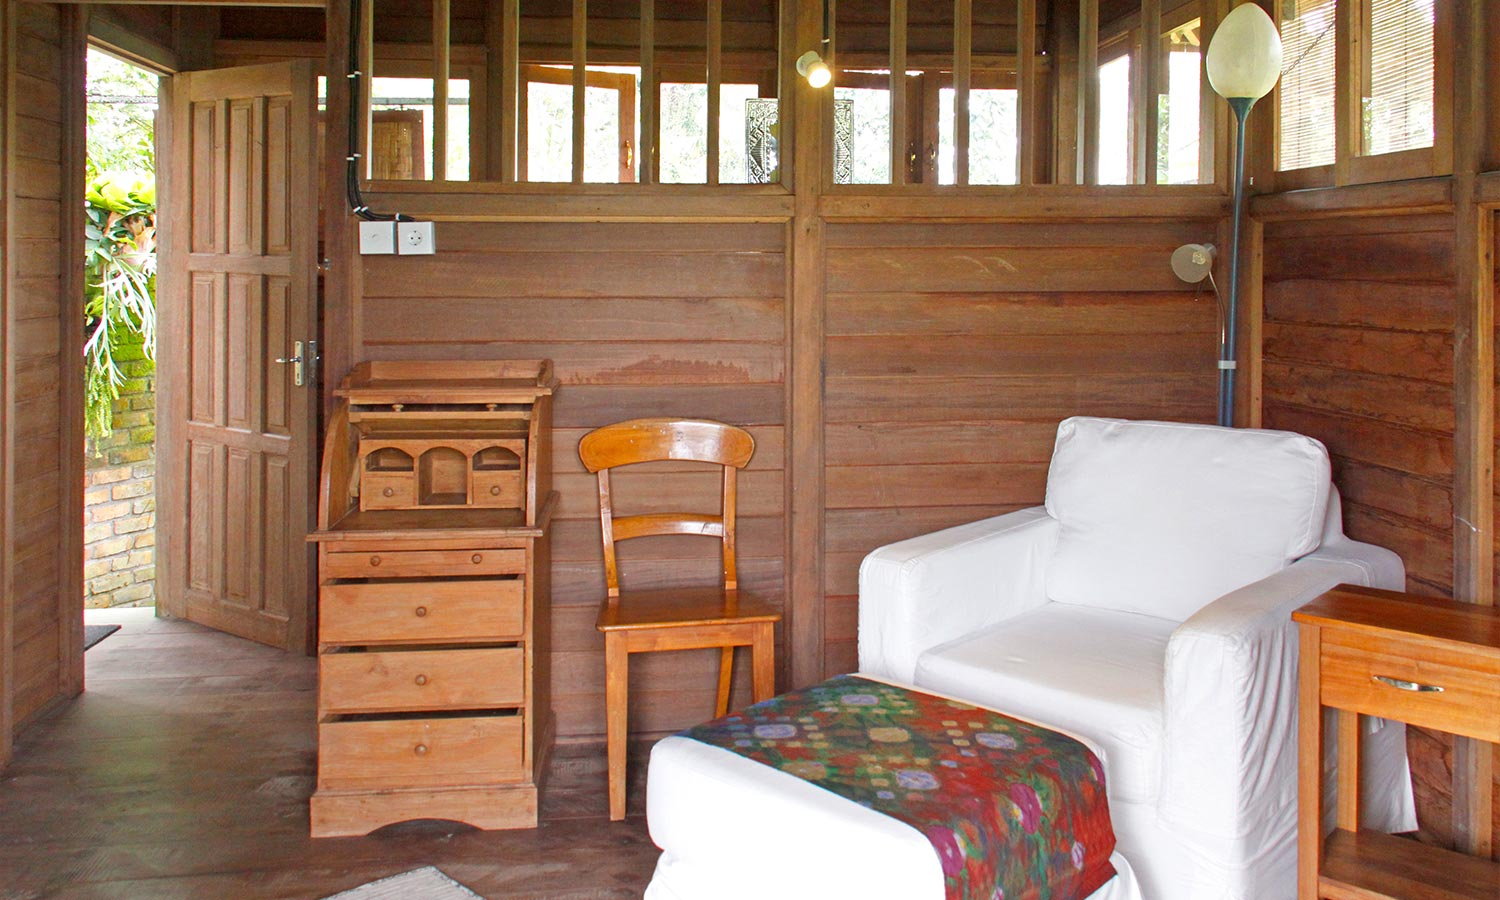 Bali Silent Retreat Deluxe Bungalow interior